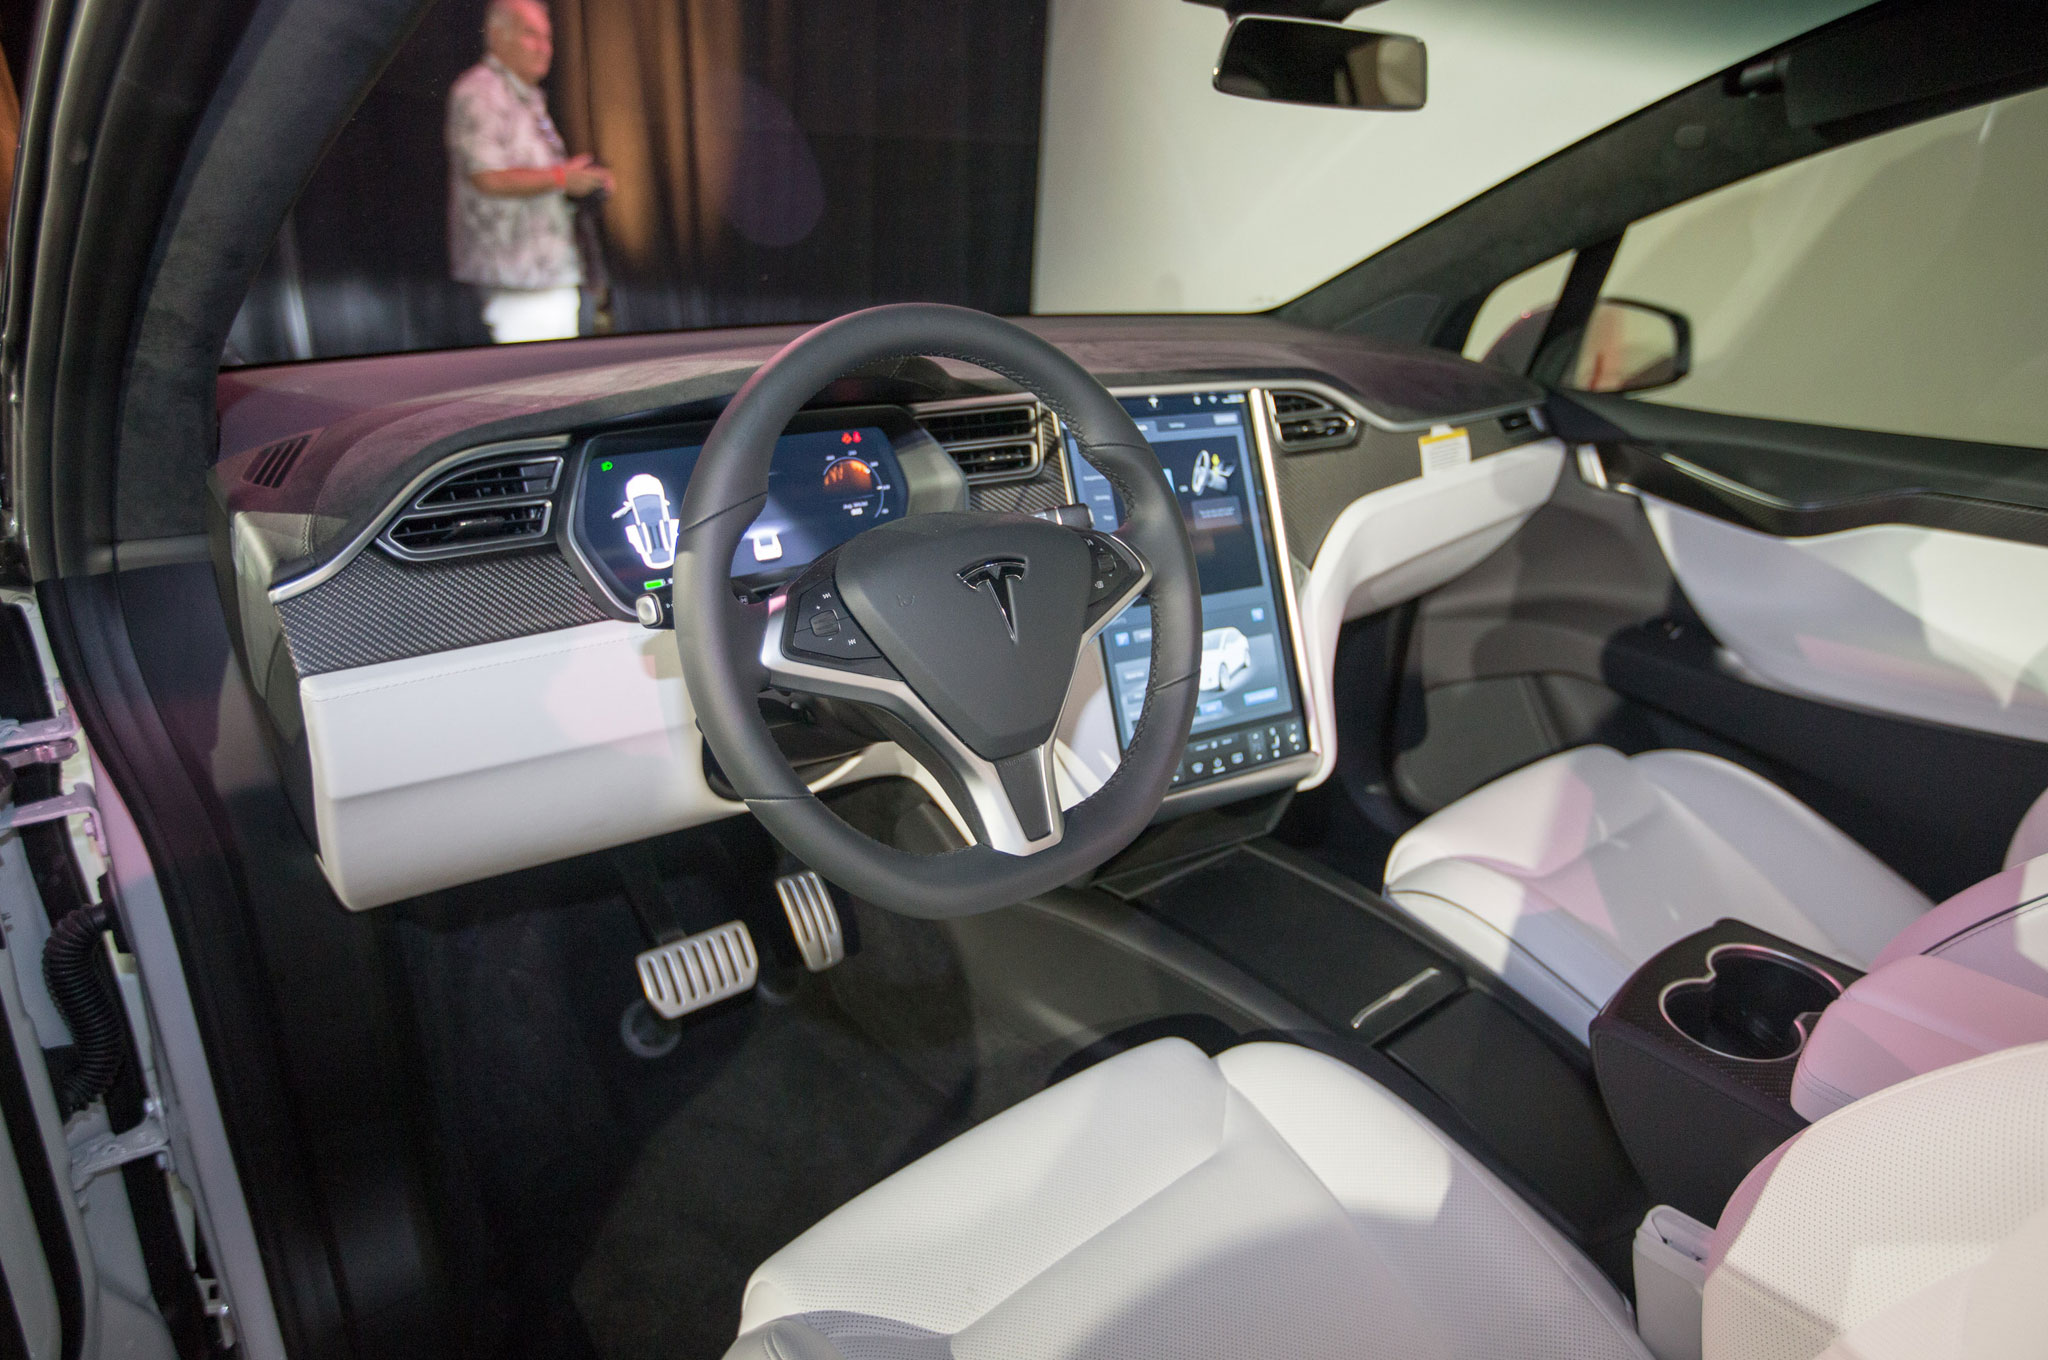 2015 Chevrolet Silverado 1500 >> Tesla Model X 2016, disponible desde $81,200